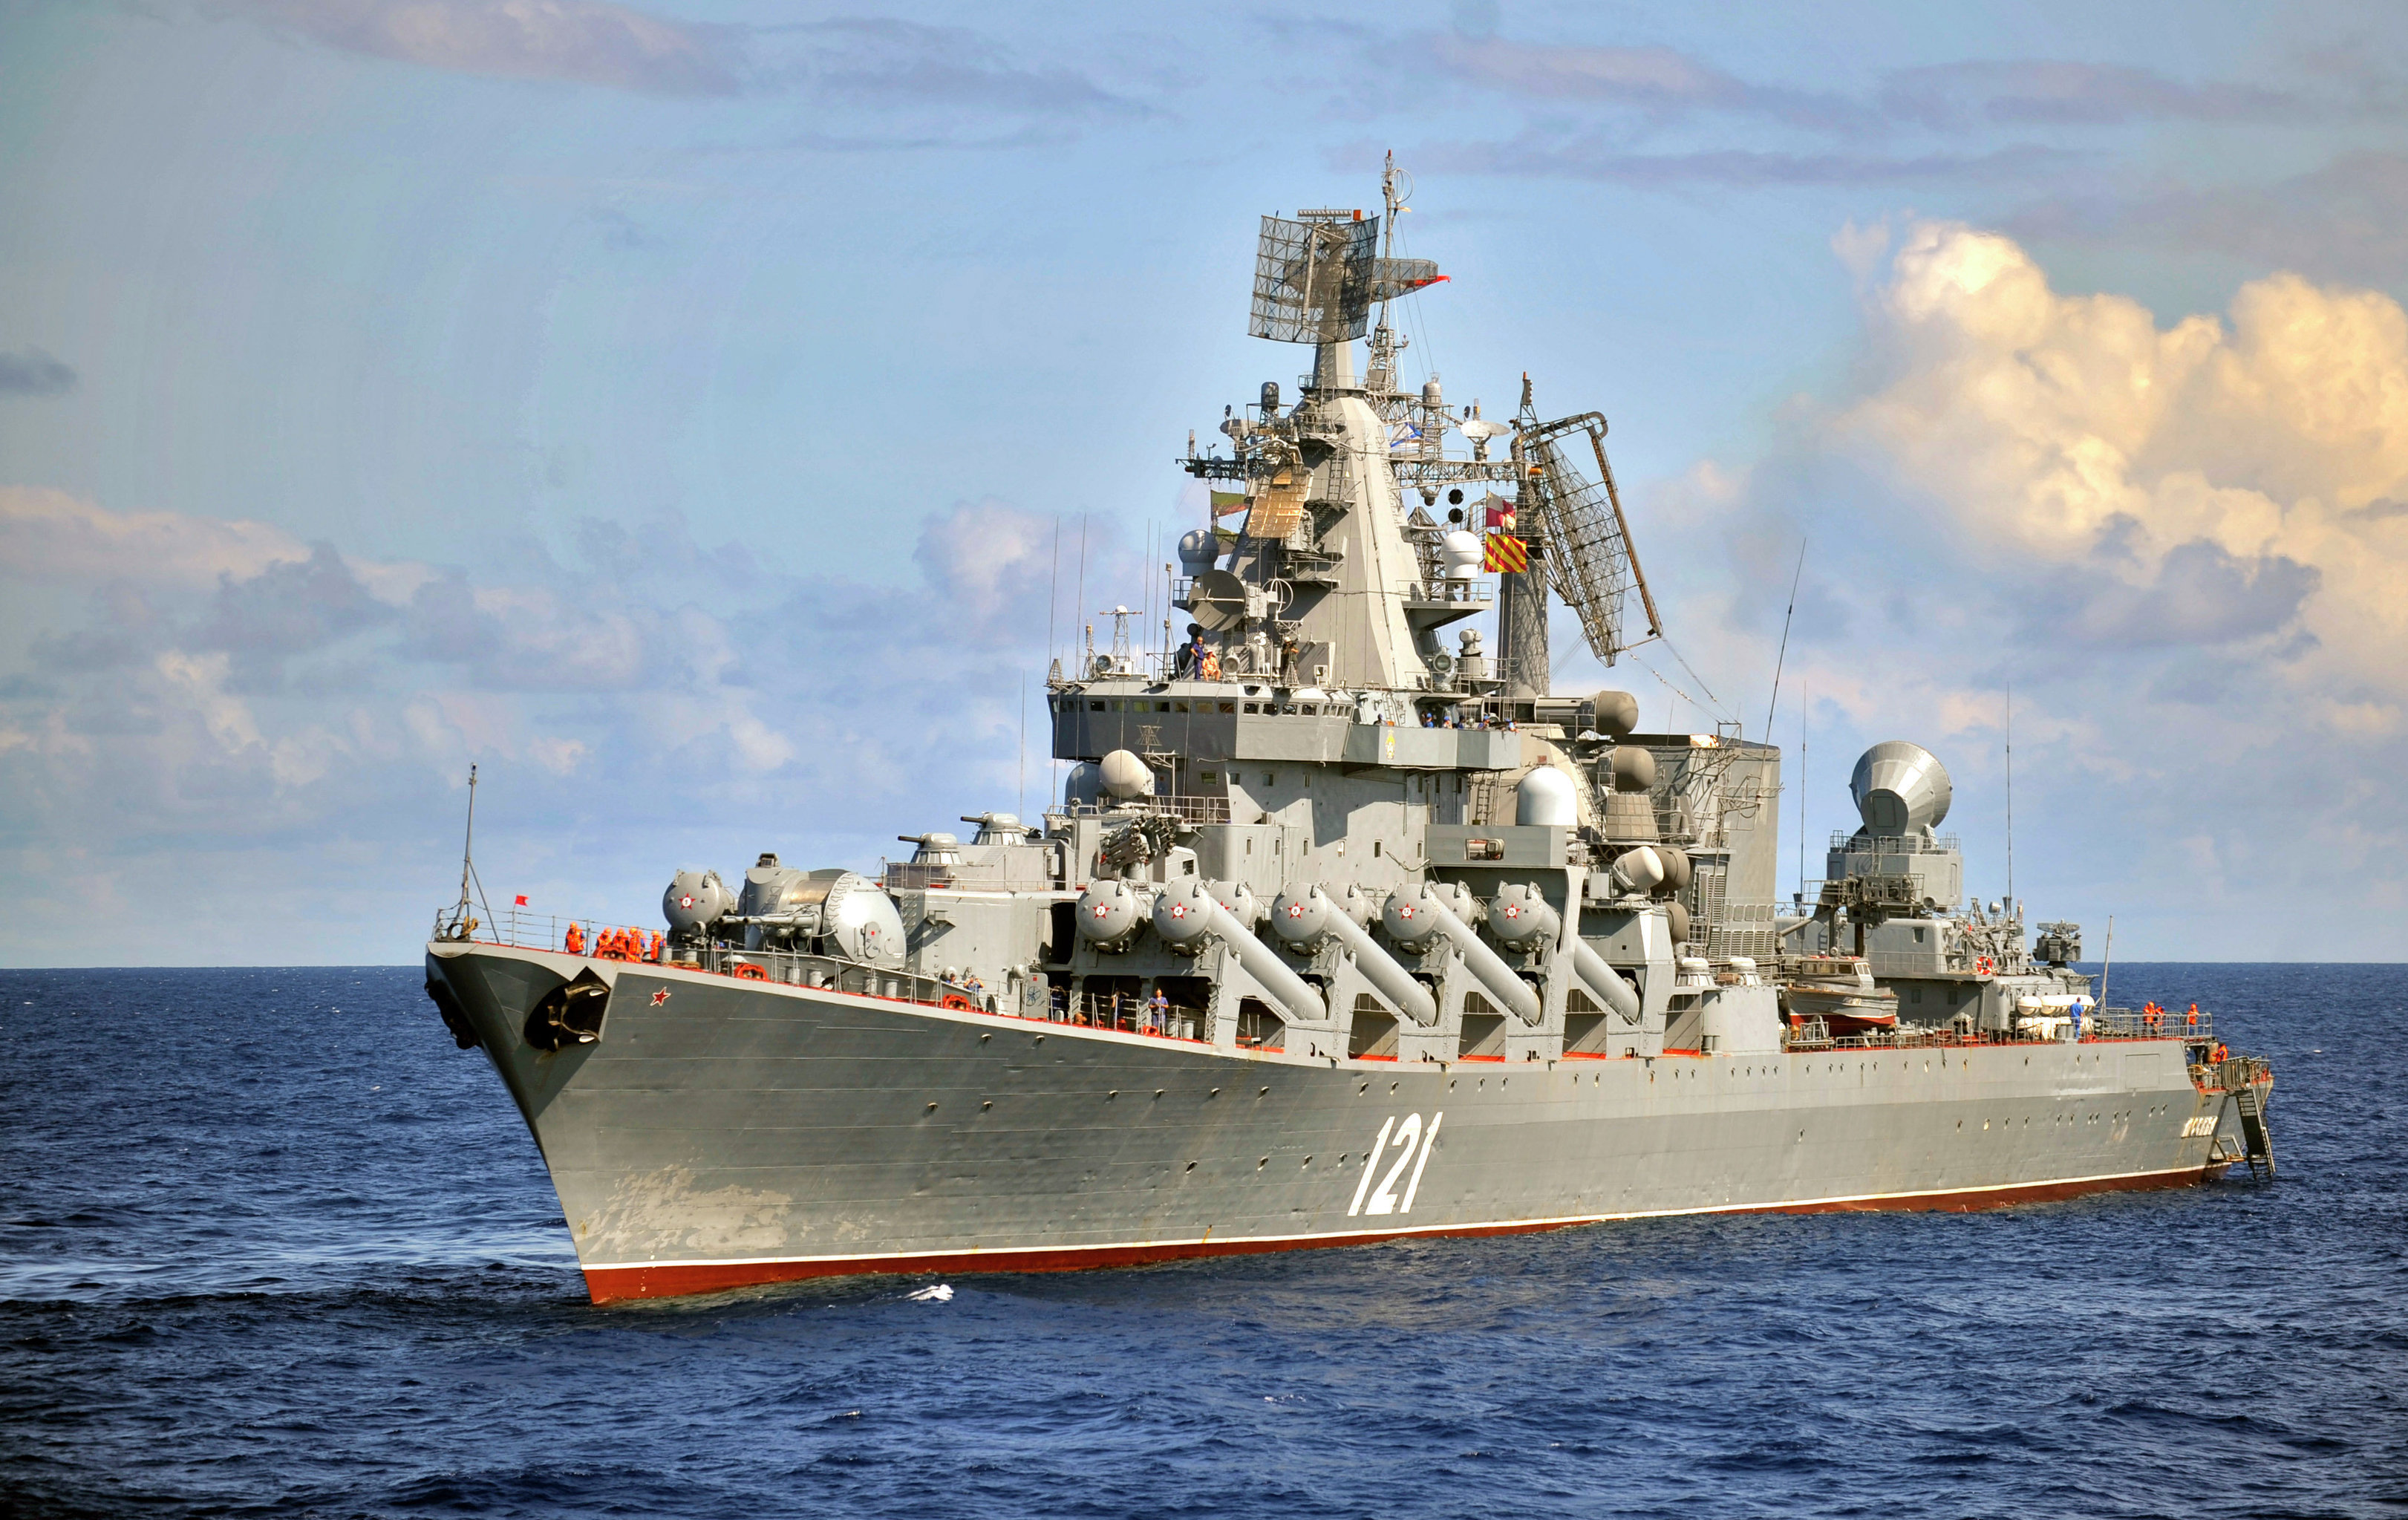 The Moskva guided missile cruiser, the flagship of Russia's Black Sea Fleet